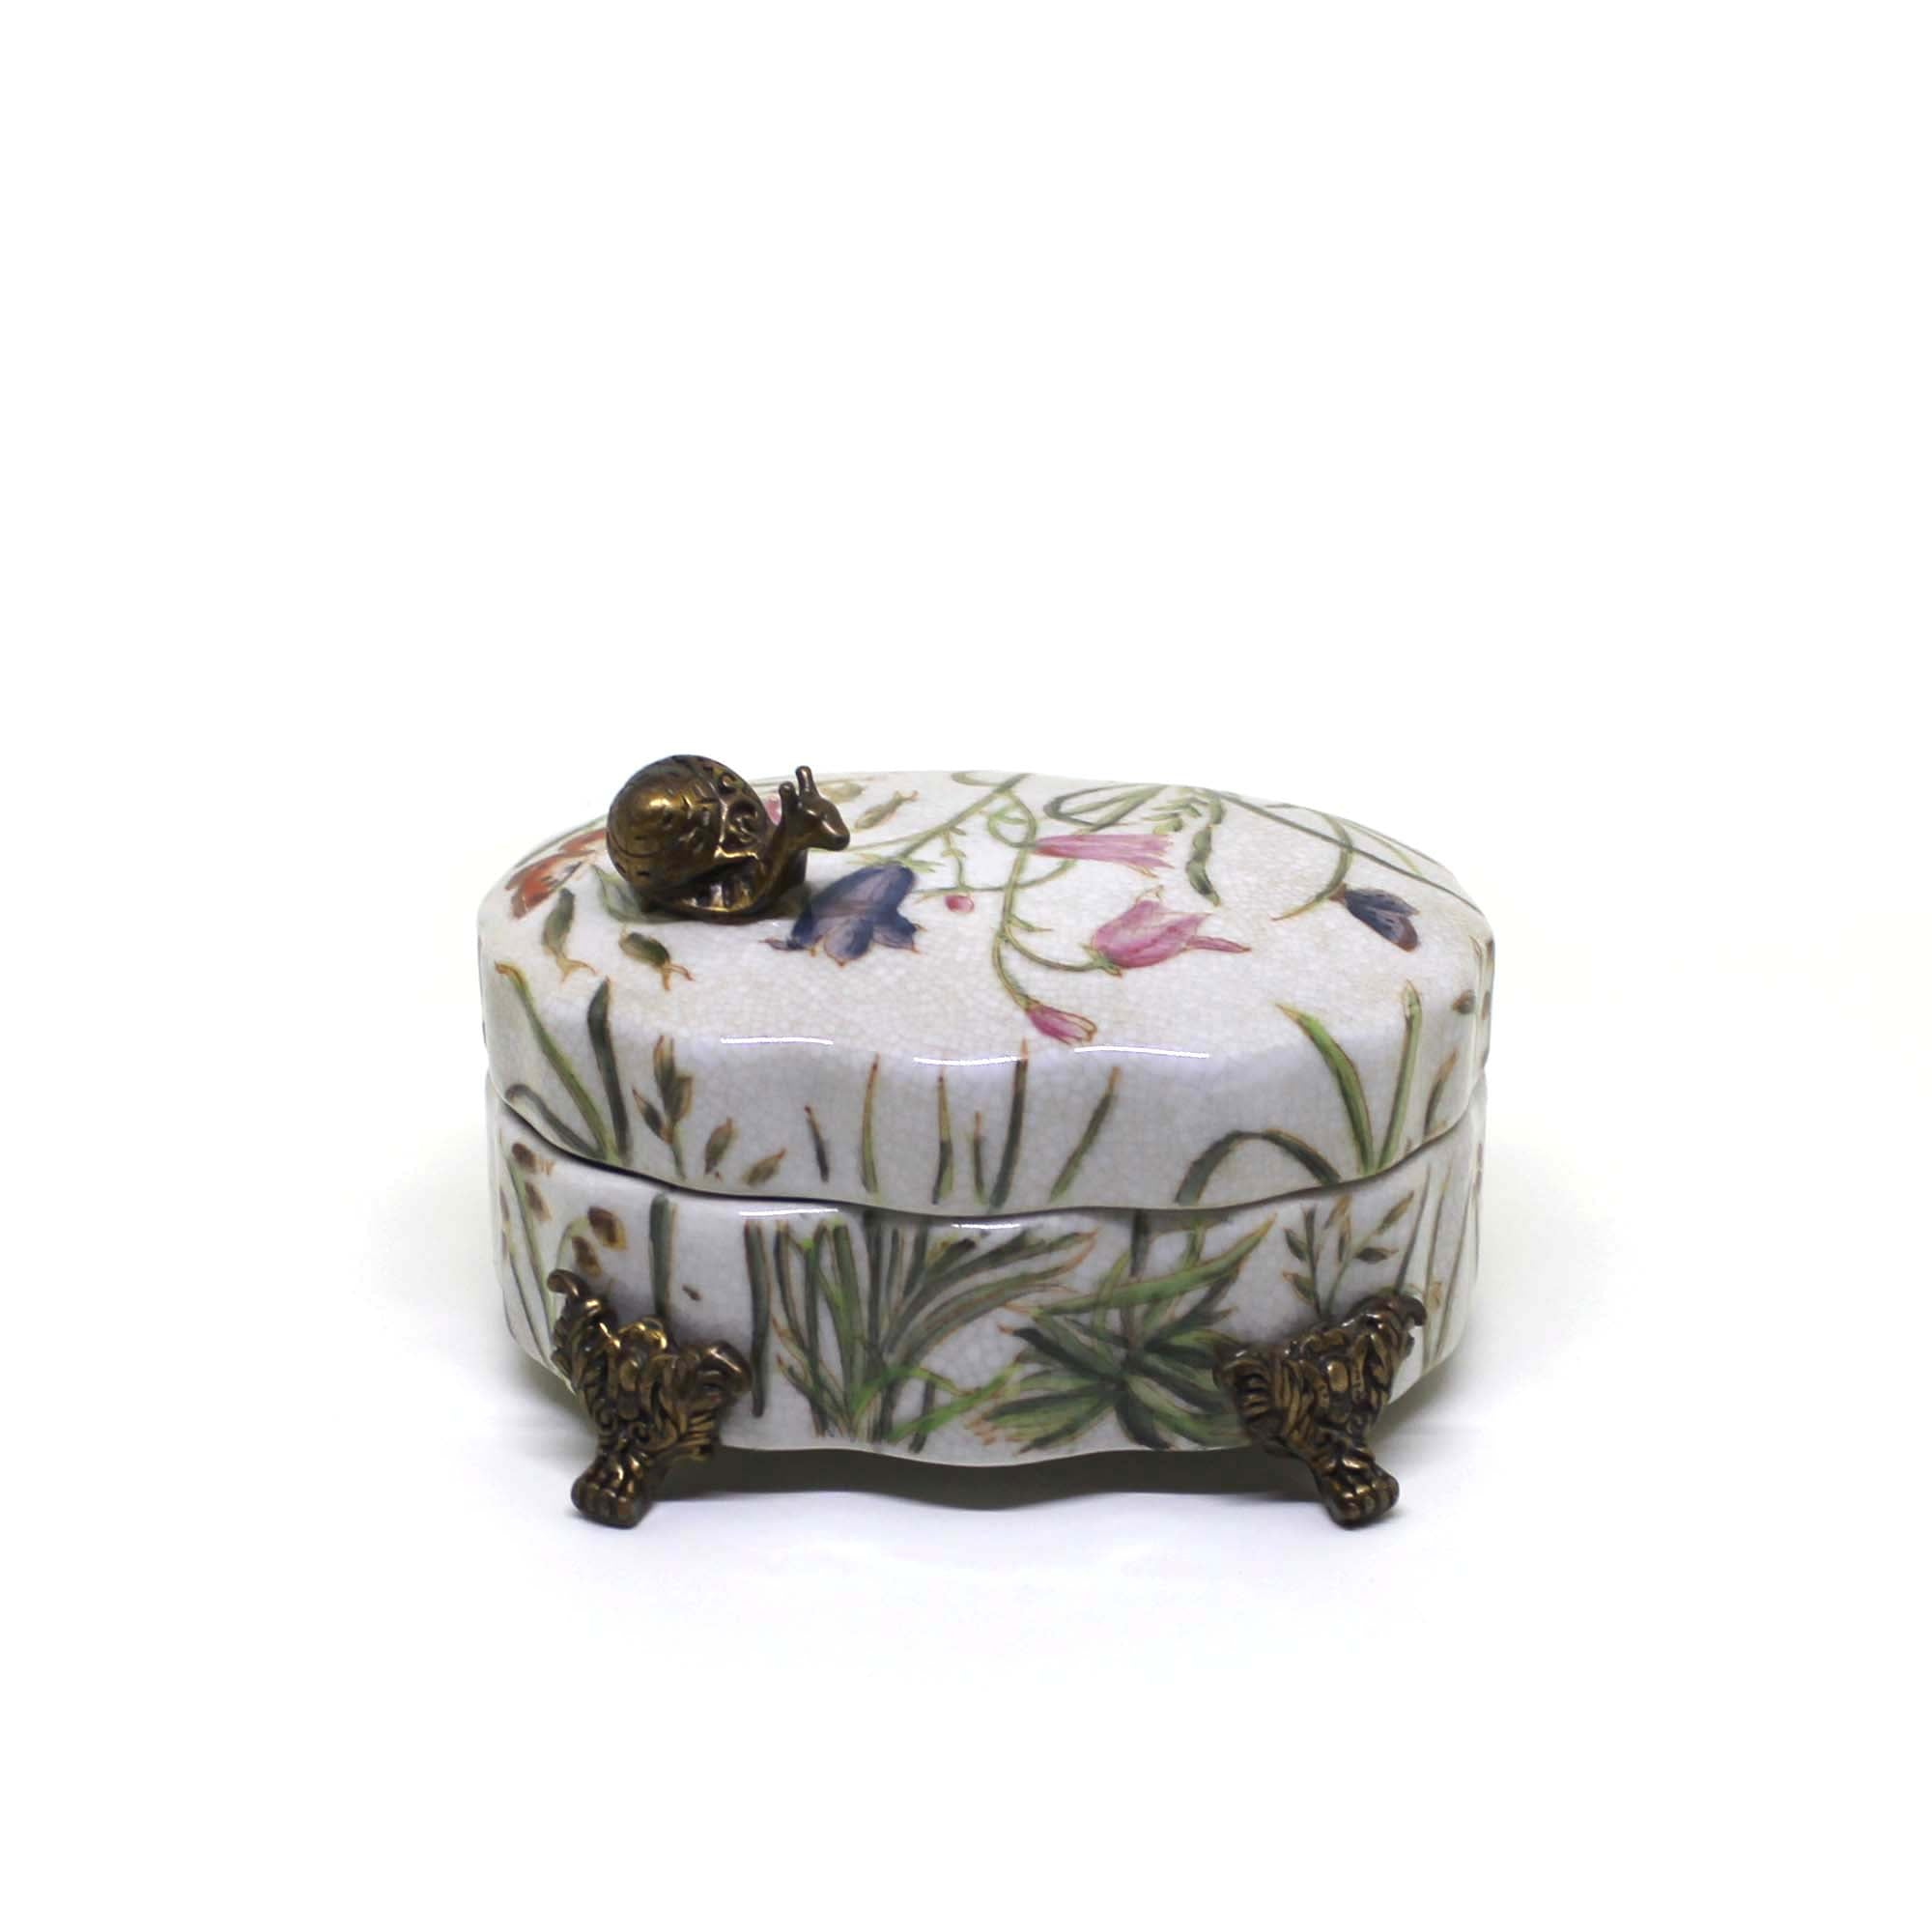 Trinket Box with Snail